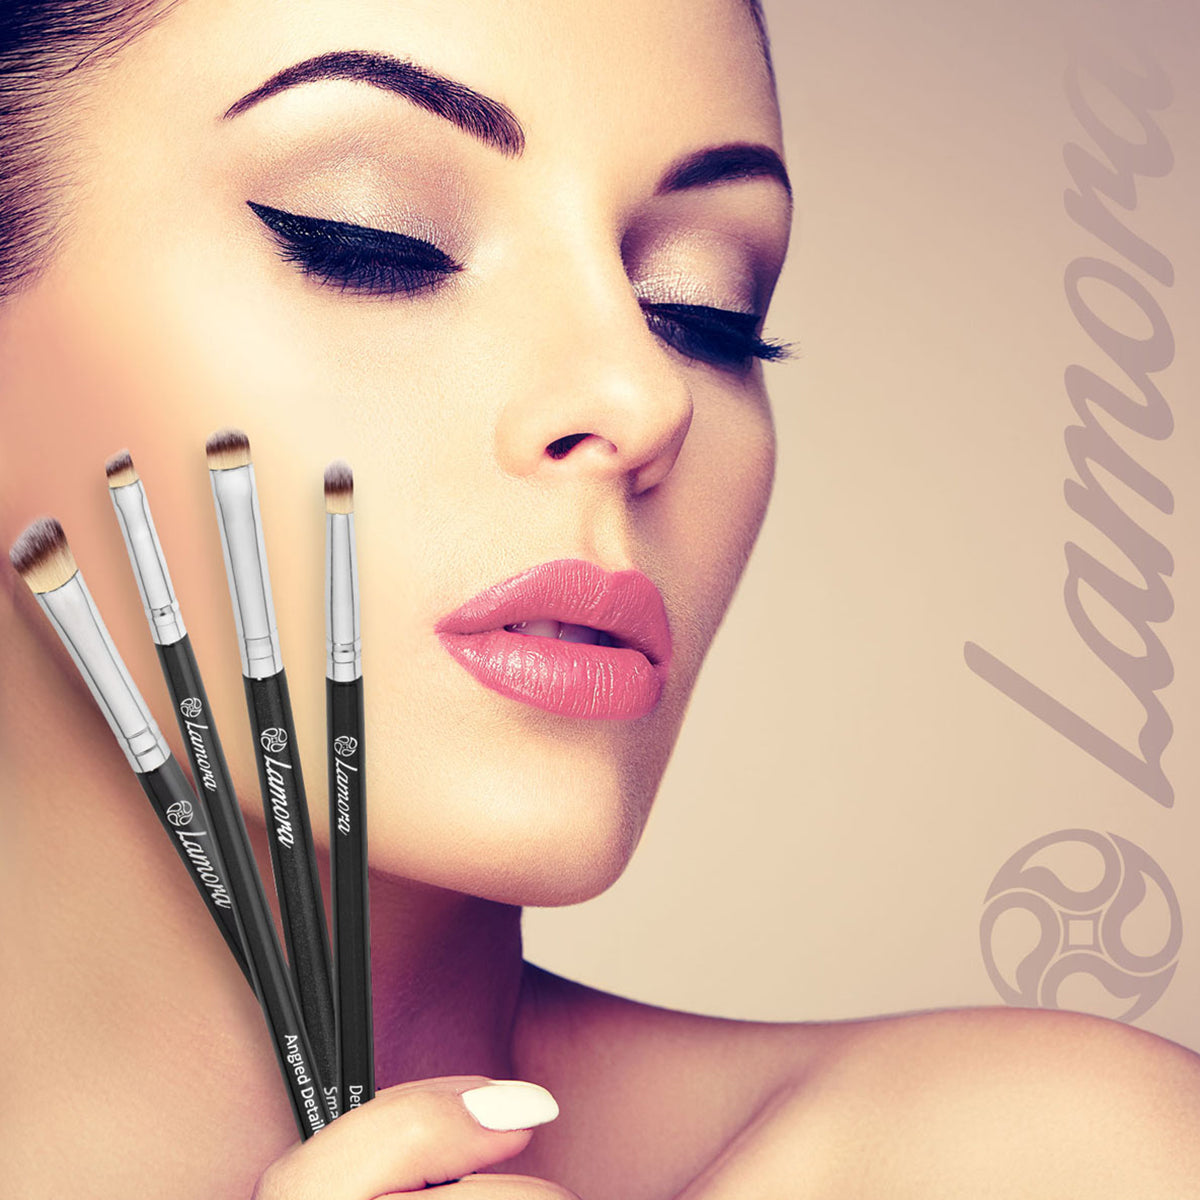 Beautiful woman holding brushes used to apply eyeshadow